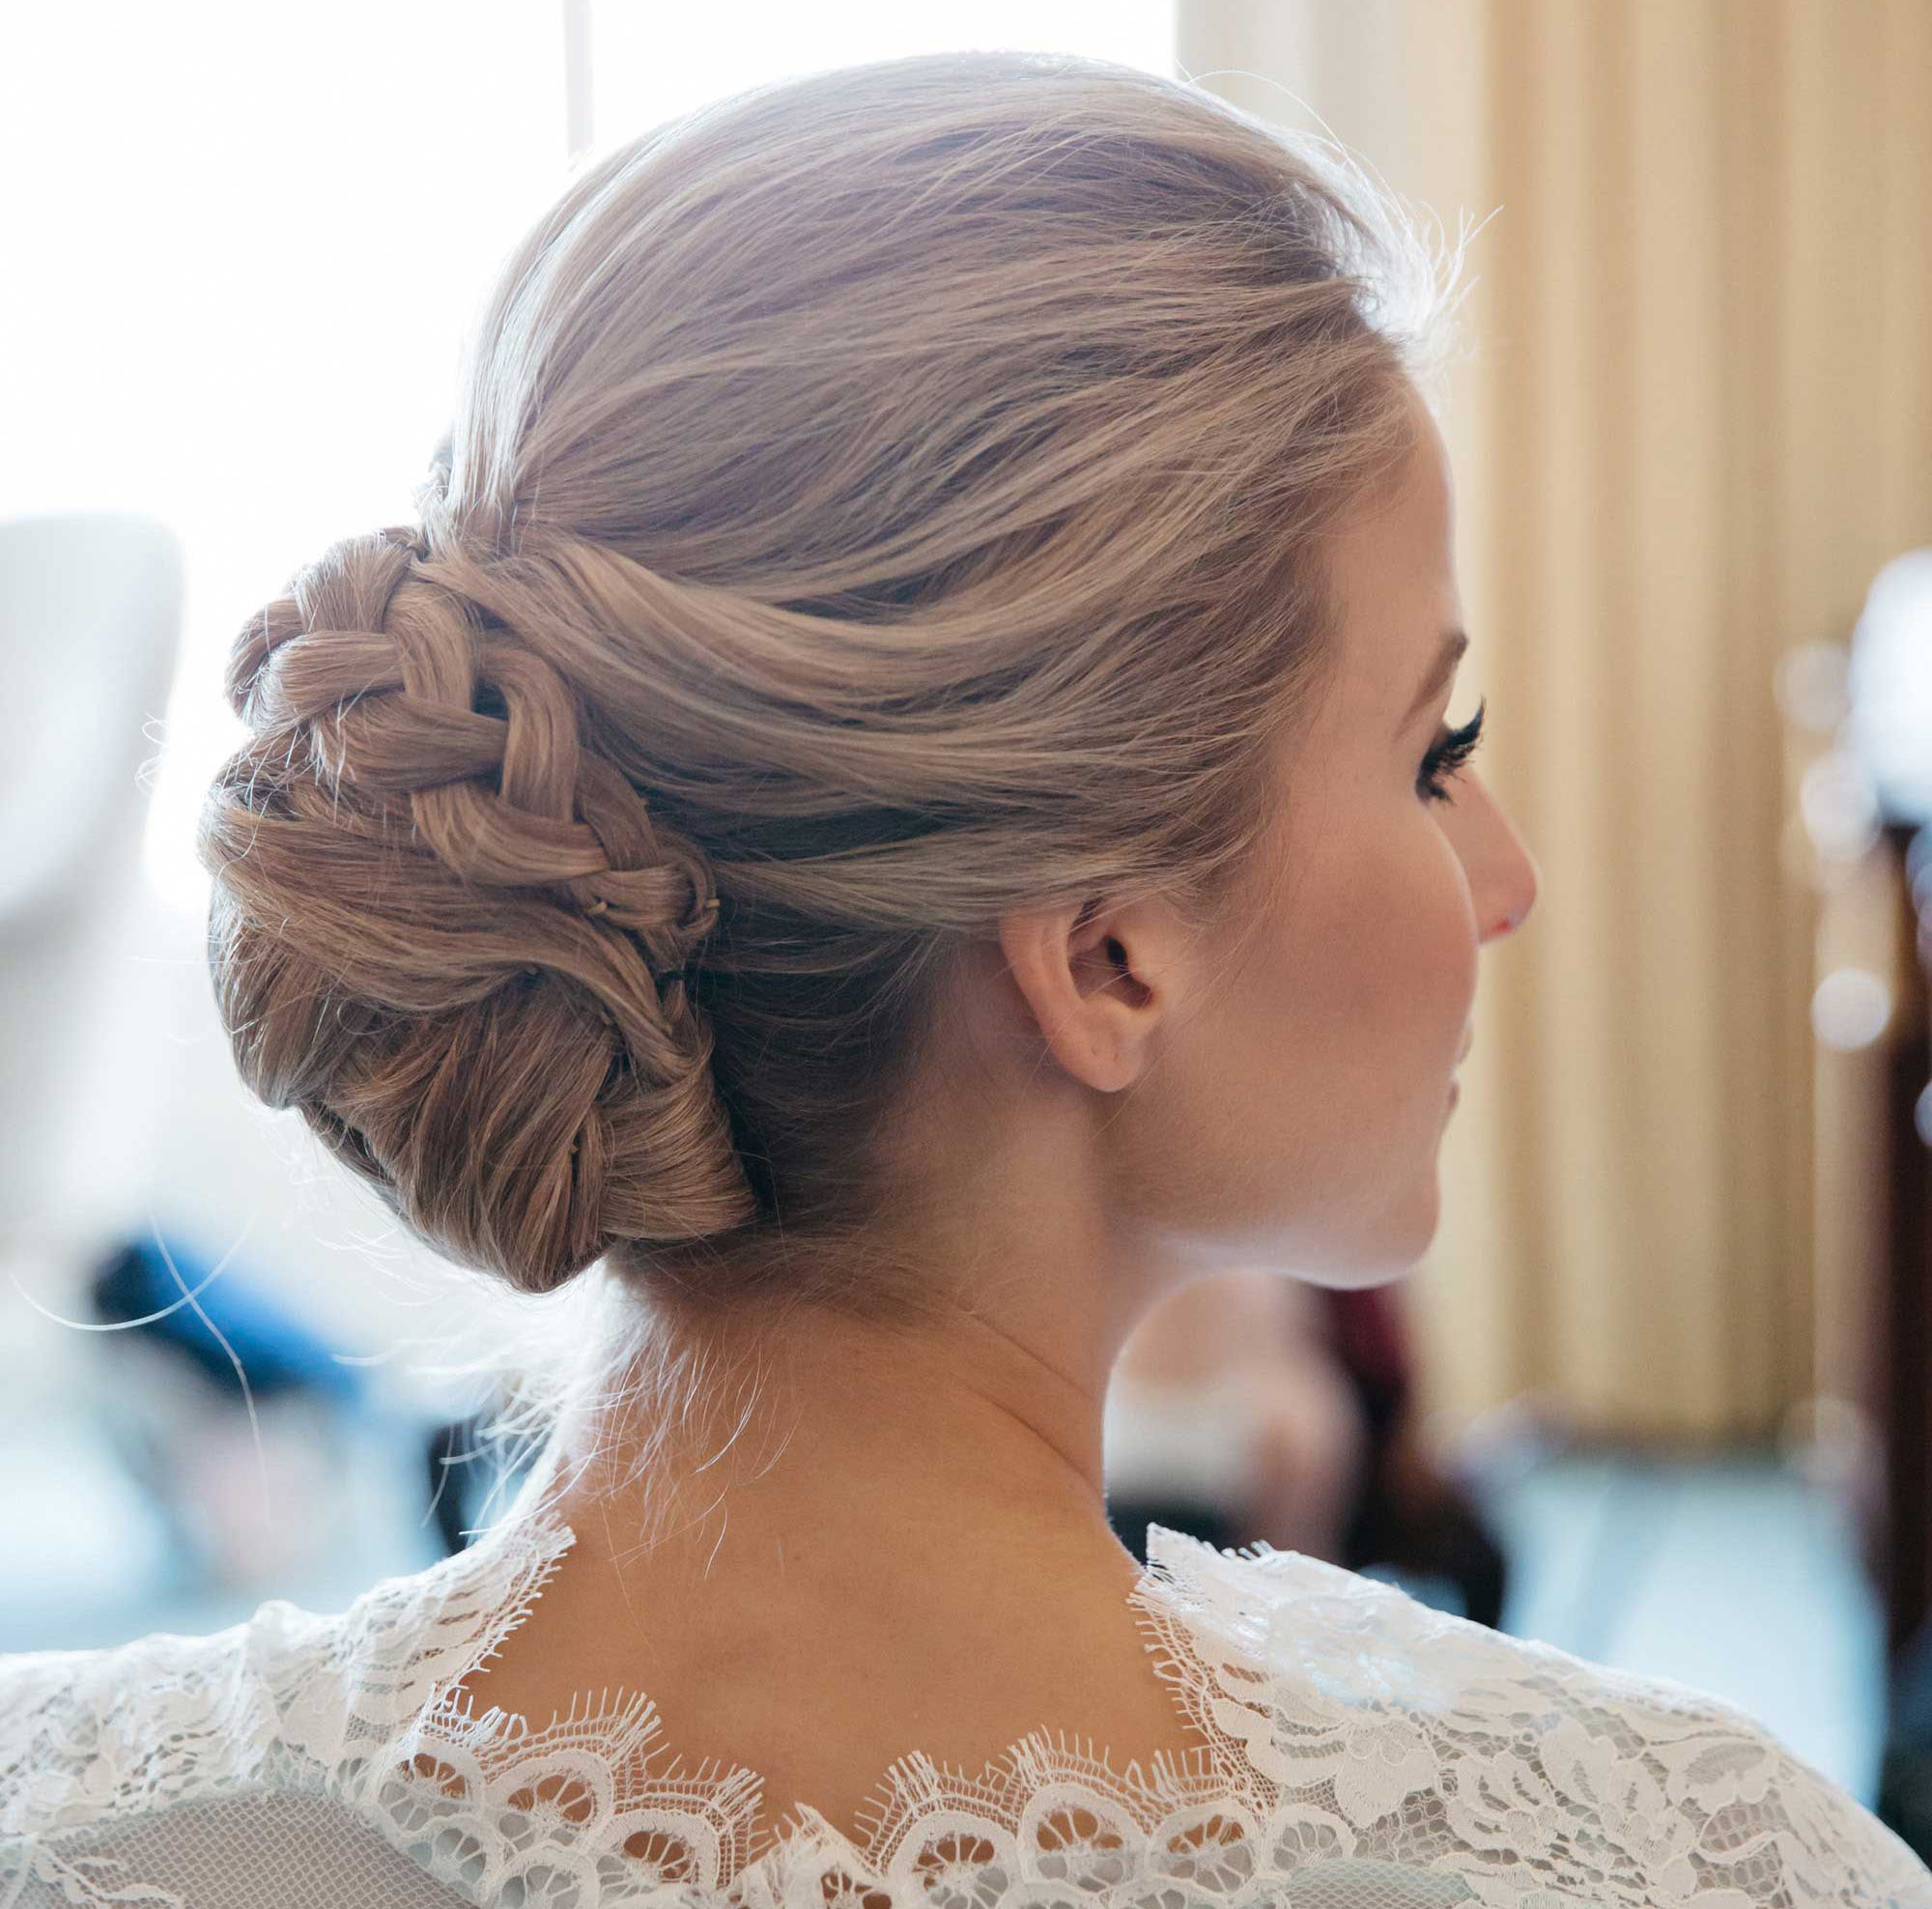 braided wedding hair styles braided hairstyles 5 ideas for your wedding look inside 8175